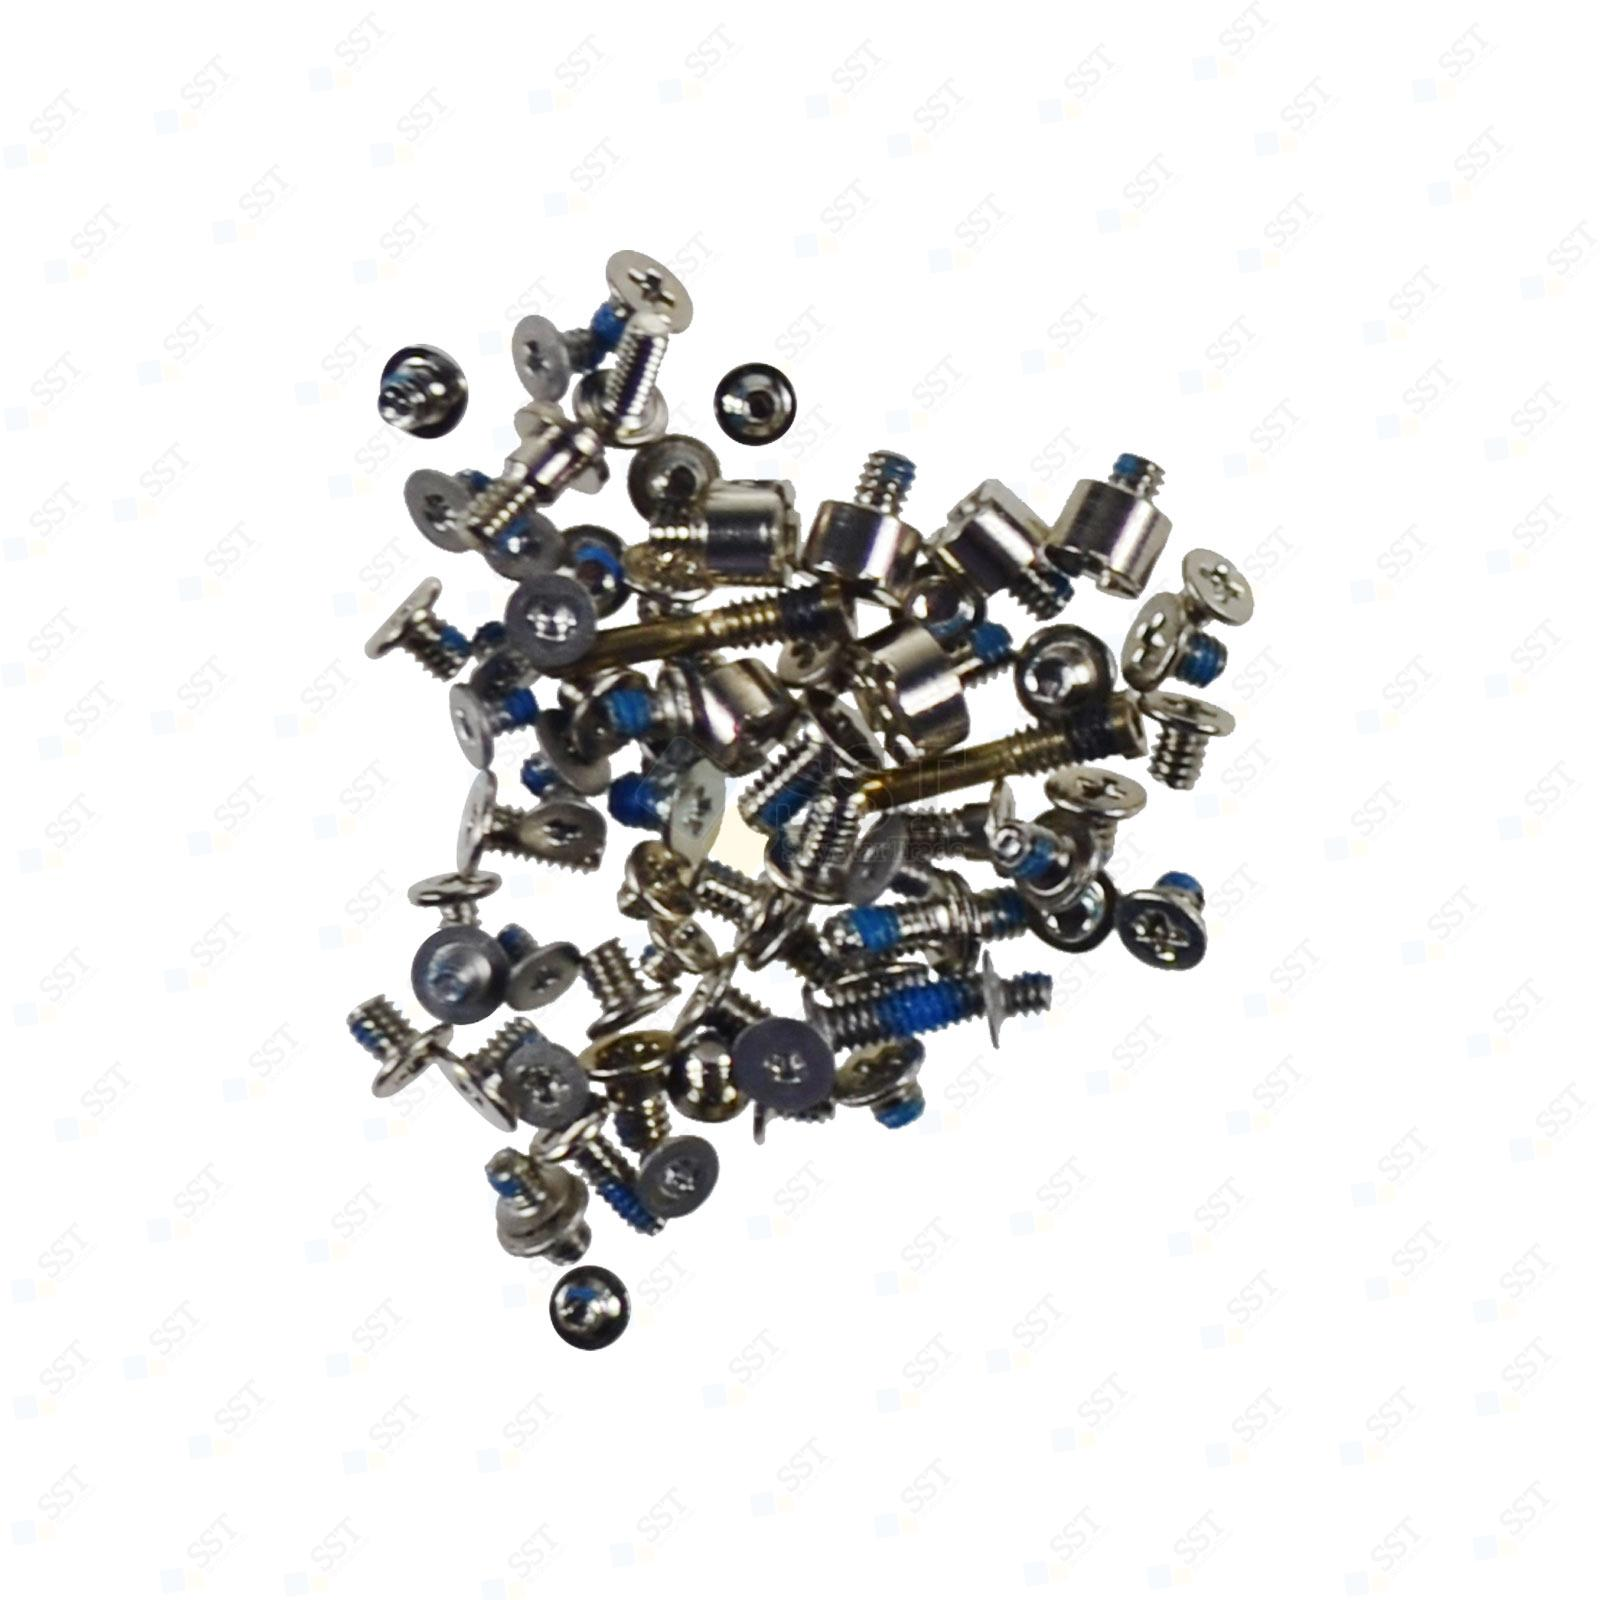 iPhone XS Max A1921 A2101 A2102 A2103 A2104 Screw, Gold, Full Set